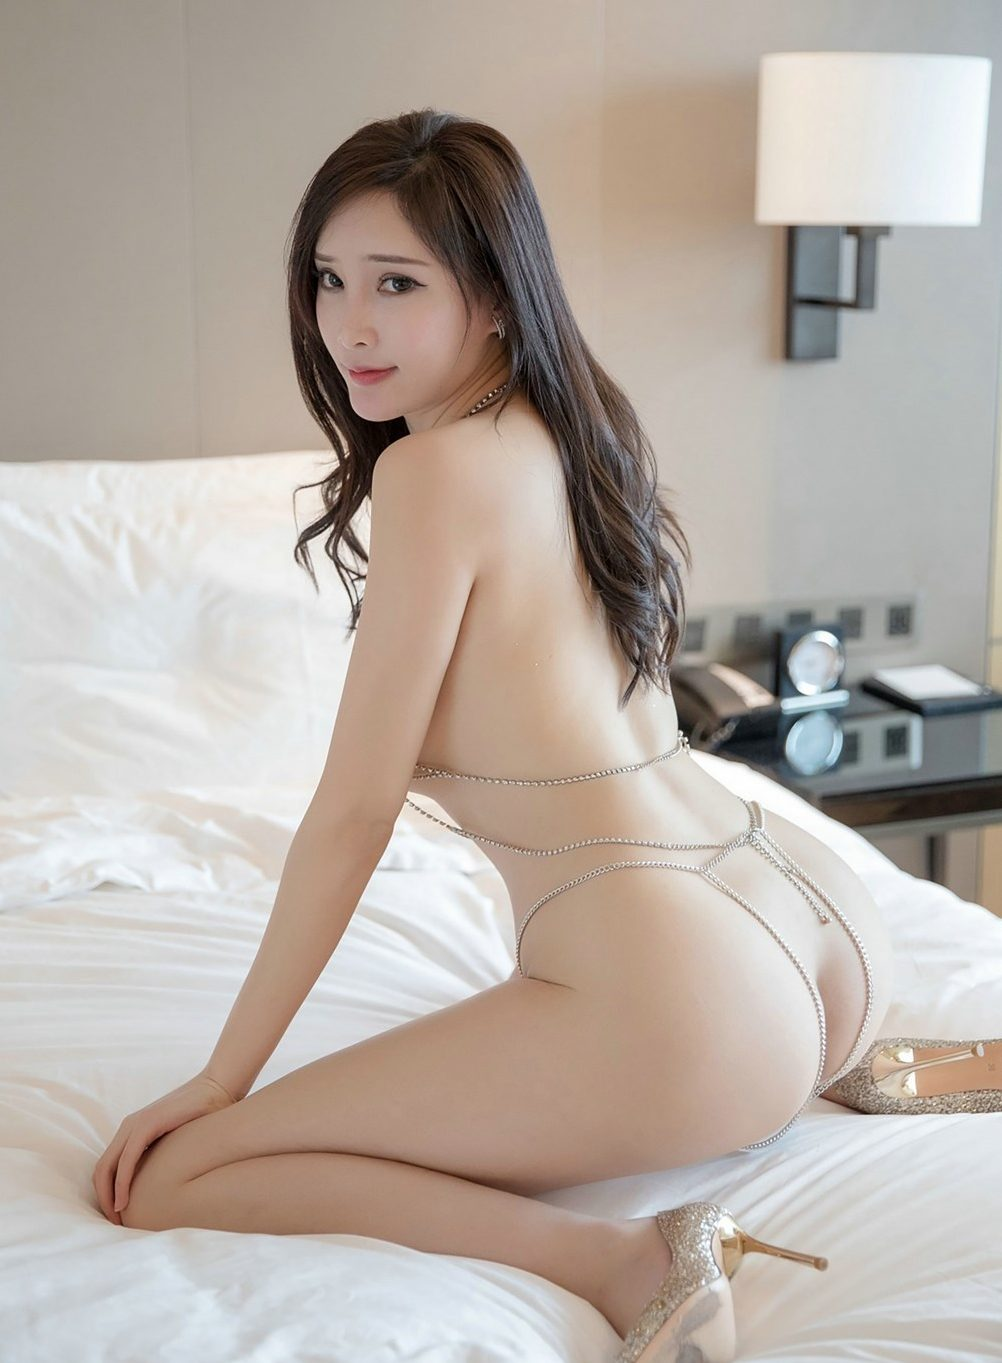 sheer lingerie hot asian girl sexy wants to be eaten and fucked